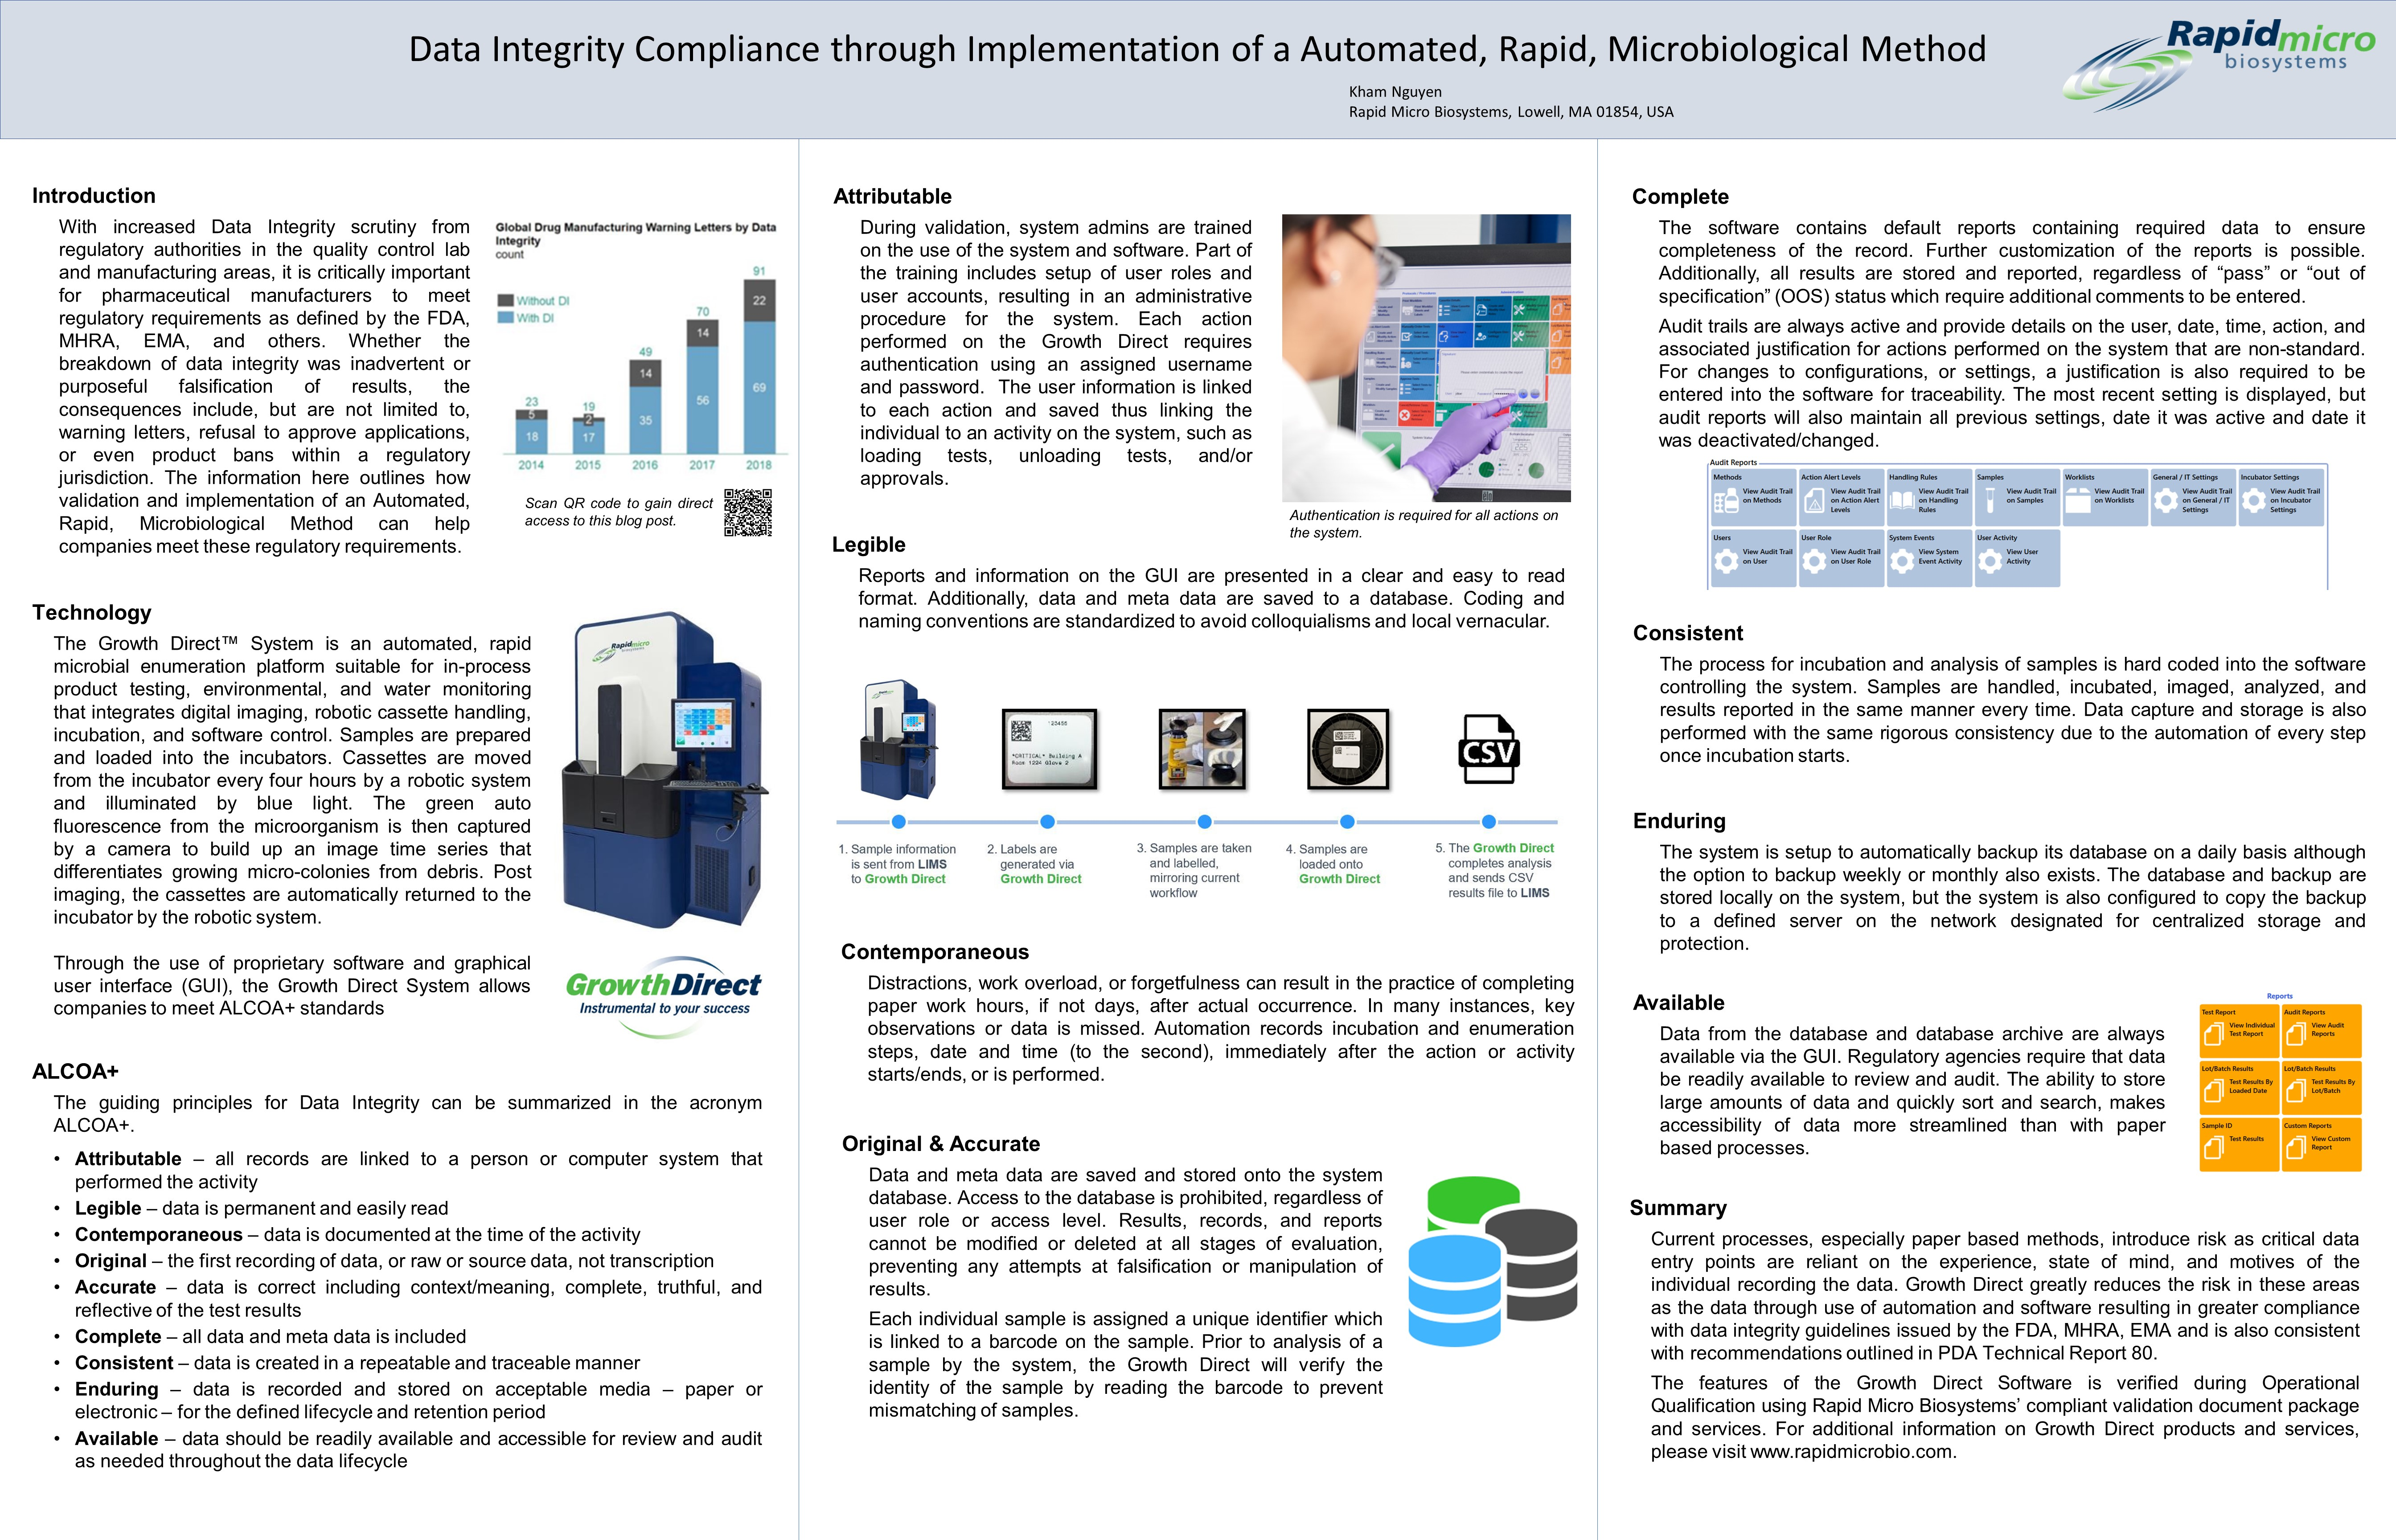 PDA Micro October 2019 - Data Integrity Poster - FINAL